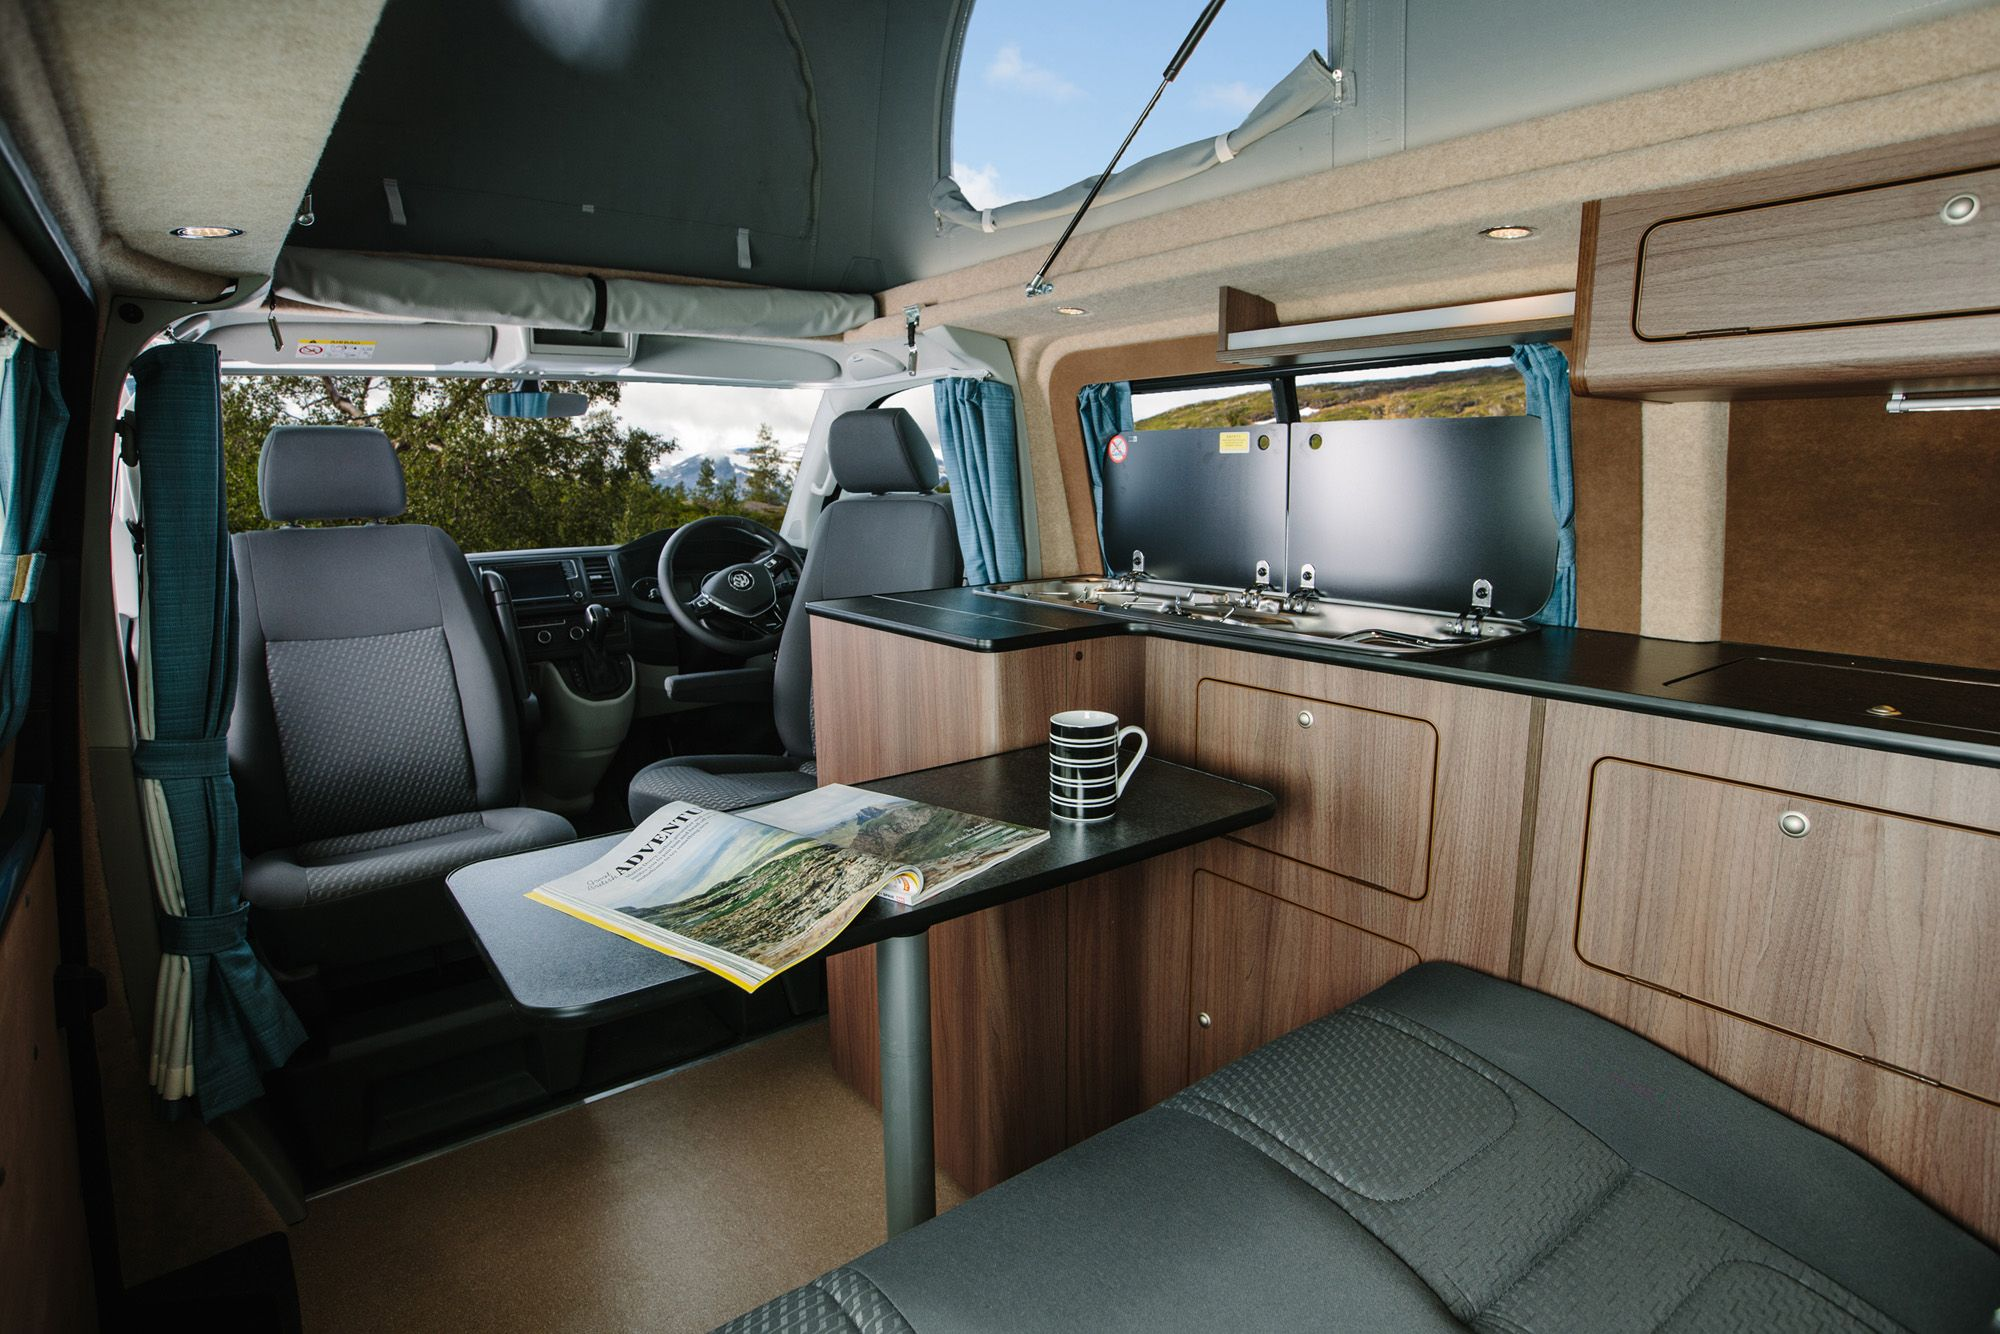 The New VW T6 Campervan